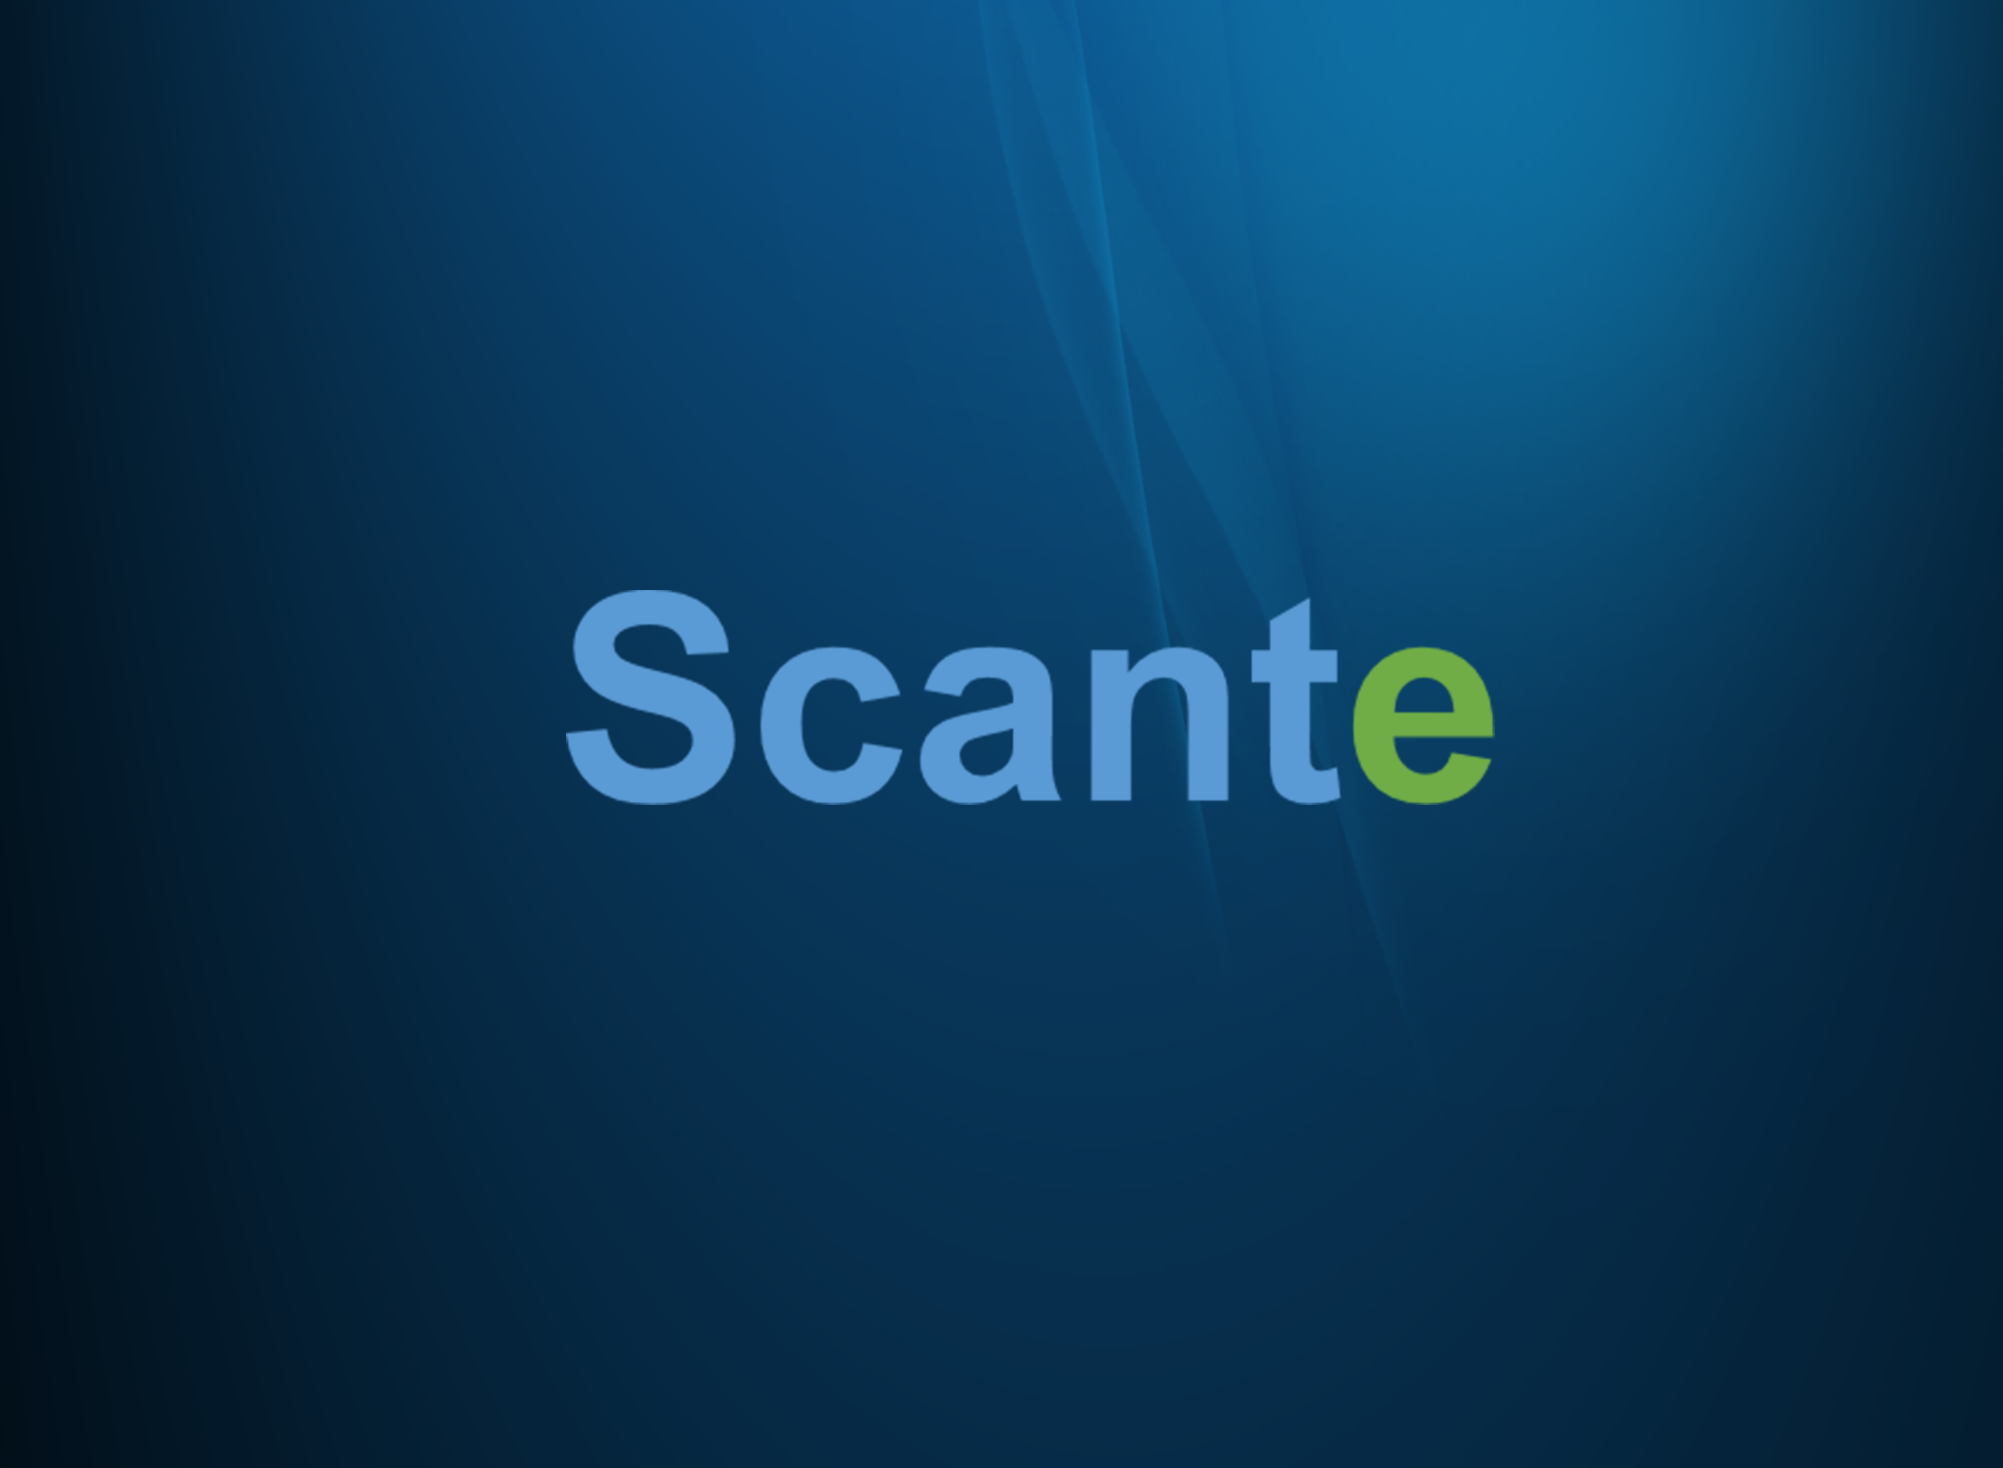 Scante IoT apps